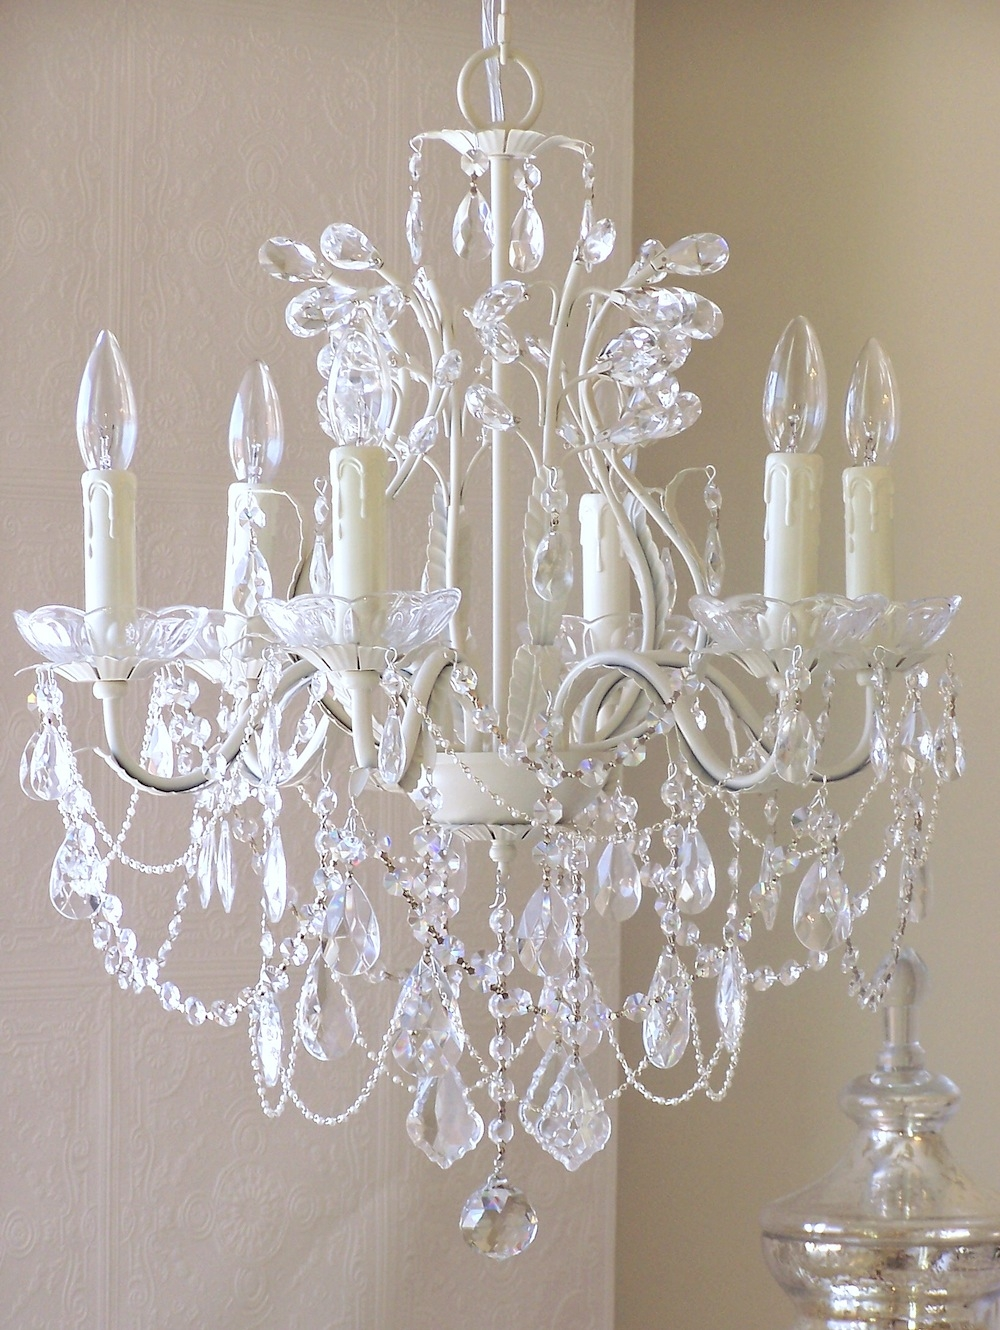 Vintage Crystal Chandelier Ideal For Your Small Home Remodel Ideas With Chandeliers Vintage (Image 14 of 15)